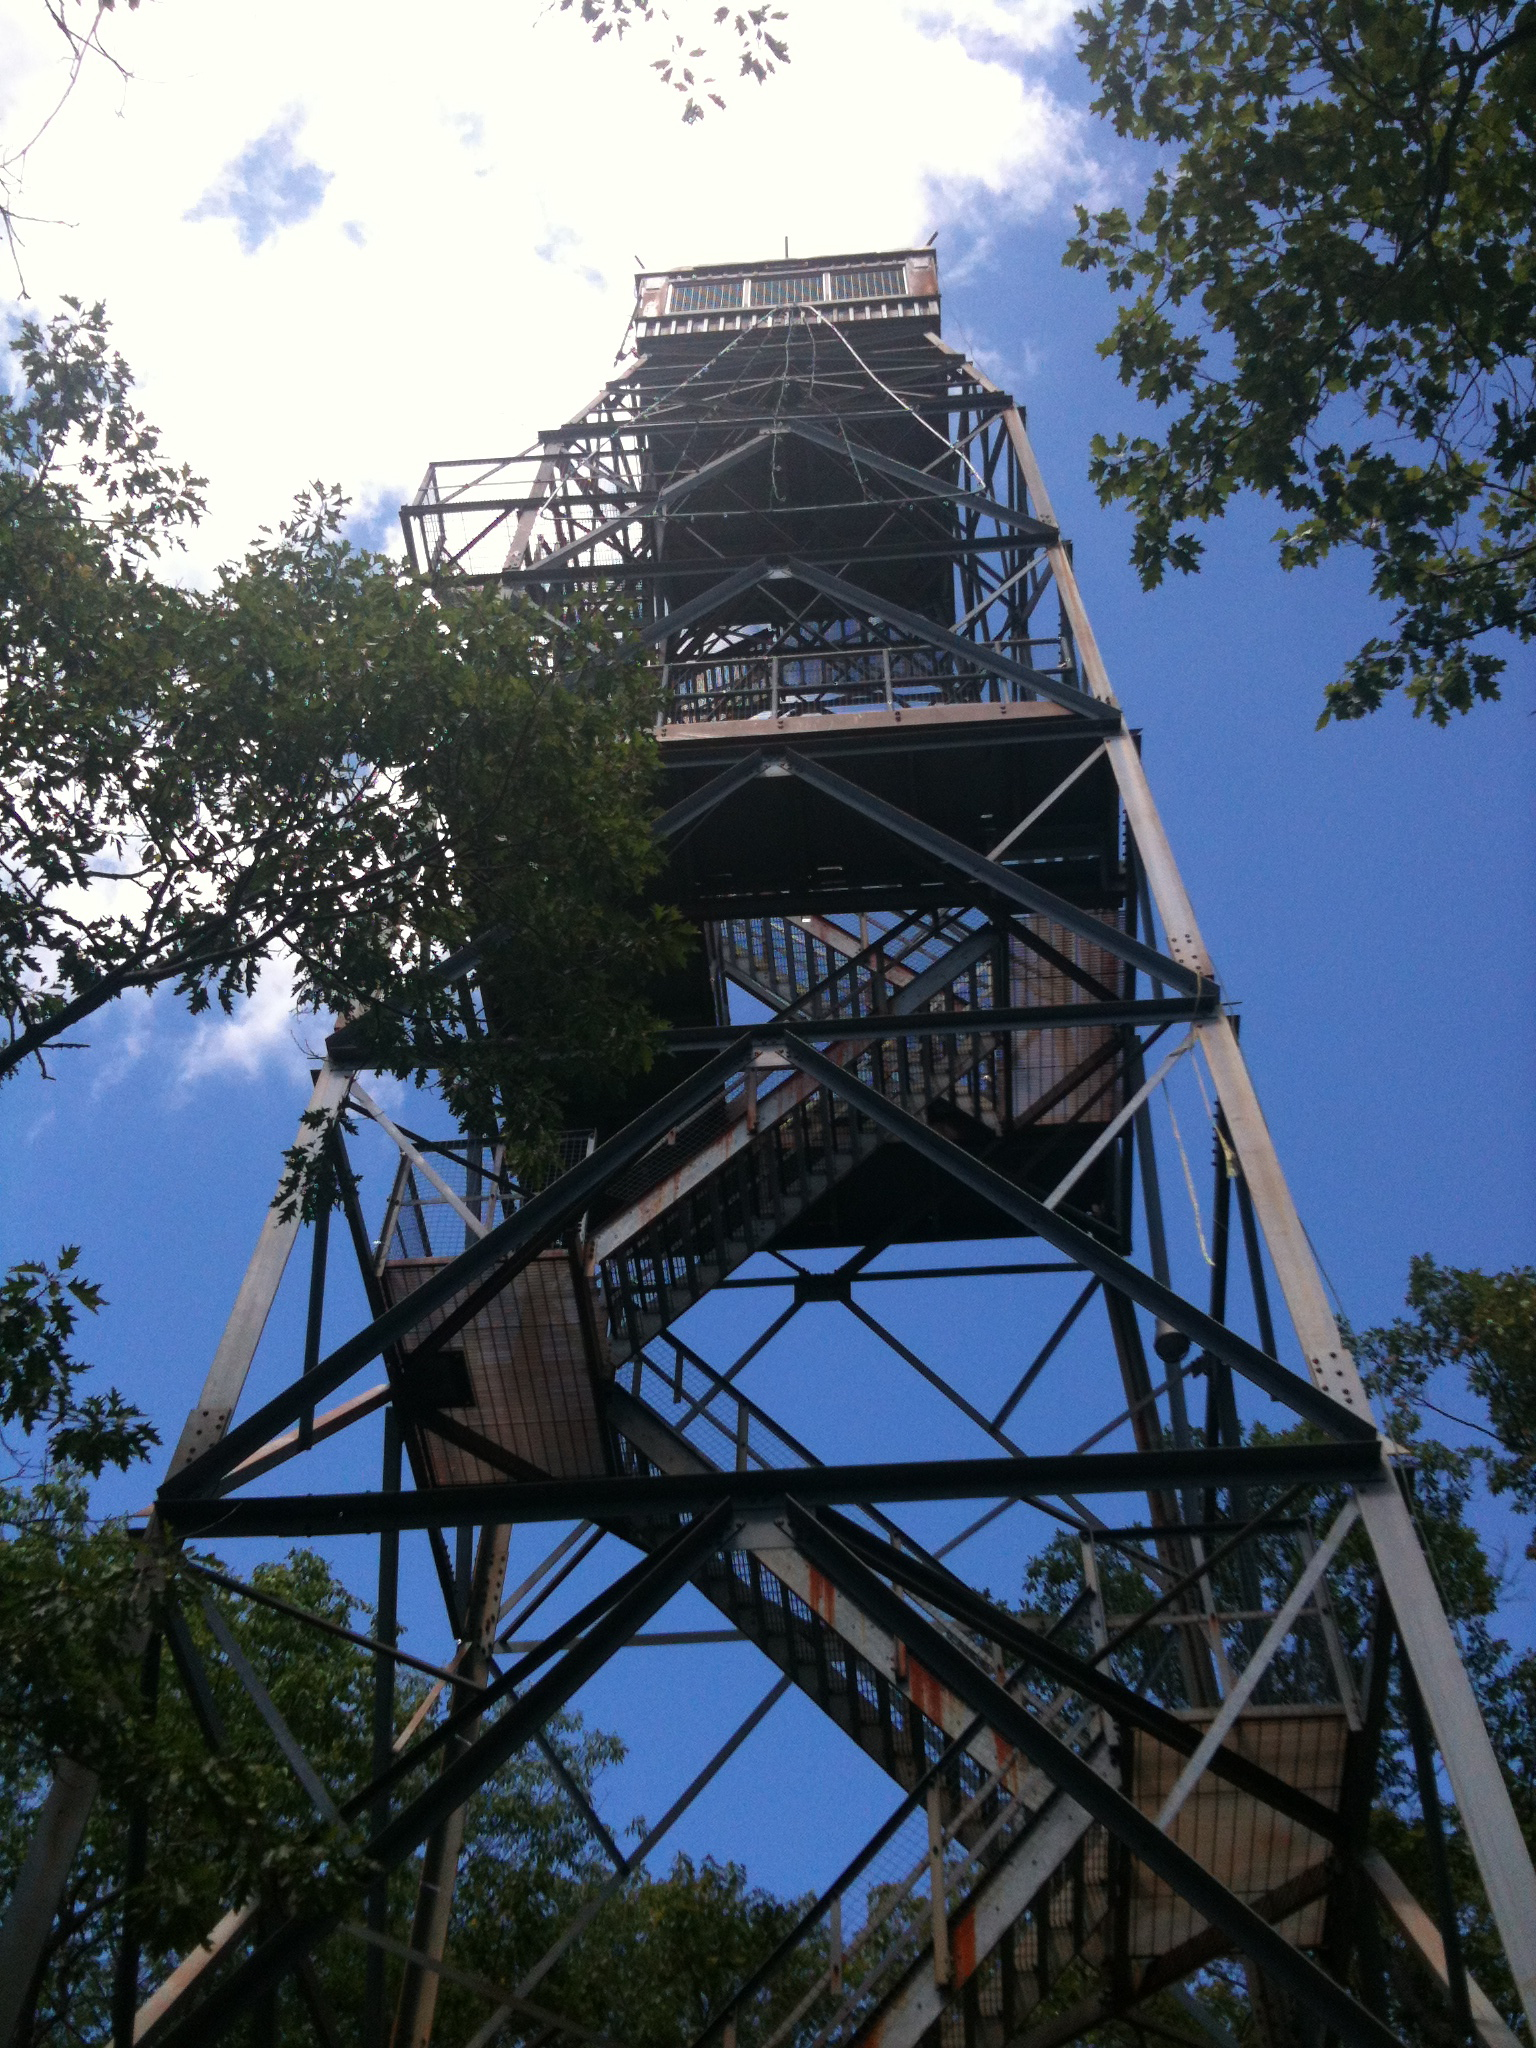 Dorset_Ontario_Canada_Lookout_Tower